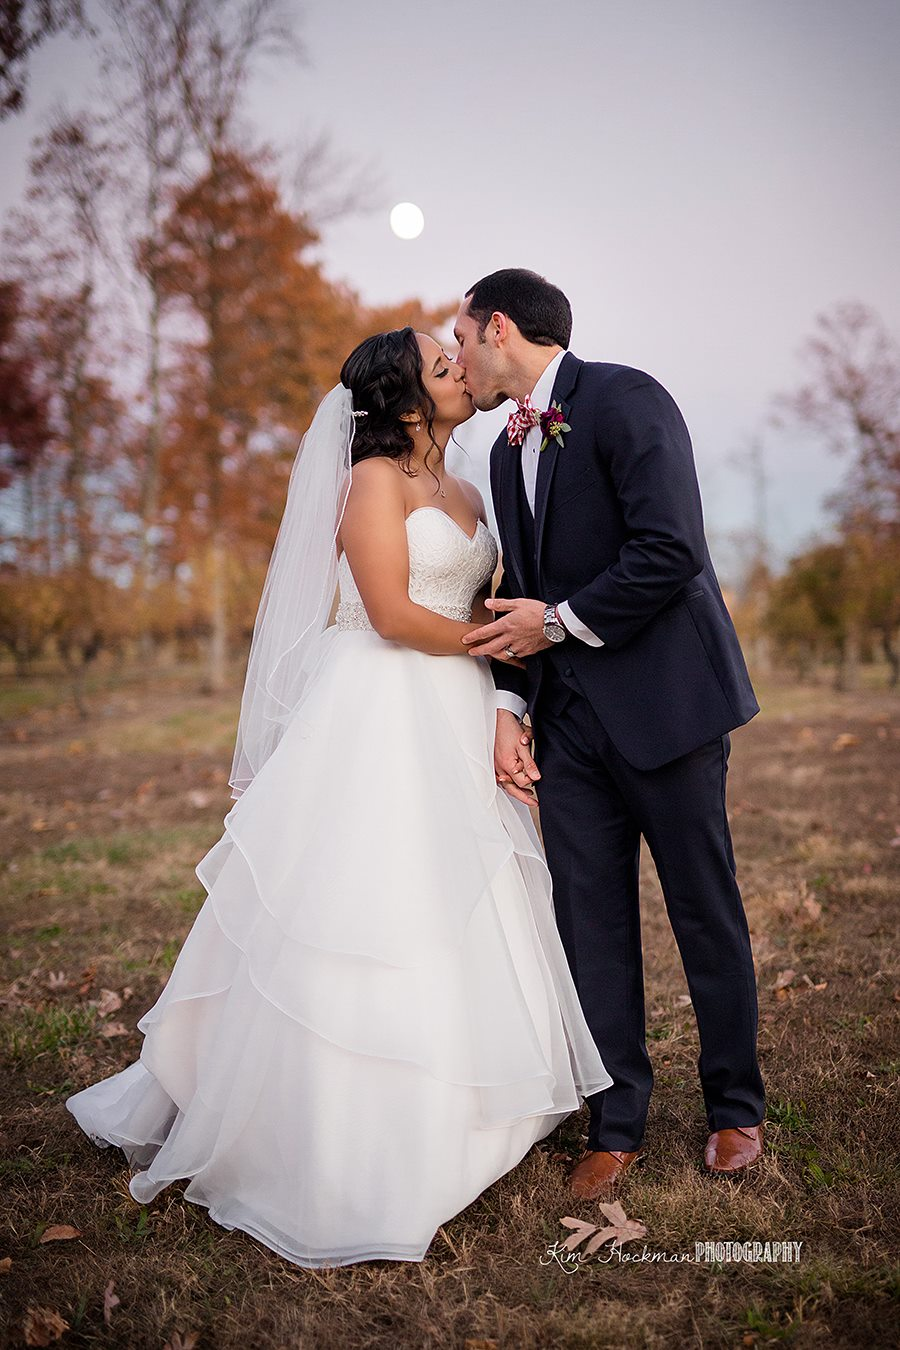 Sara + Patrick on November 11, 2016 ♥ Kim Hockman Photography at The Harvest House at Lost Creek Winery (Leesburg, VA)